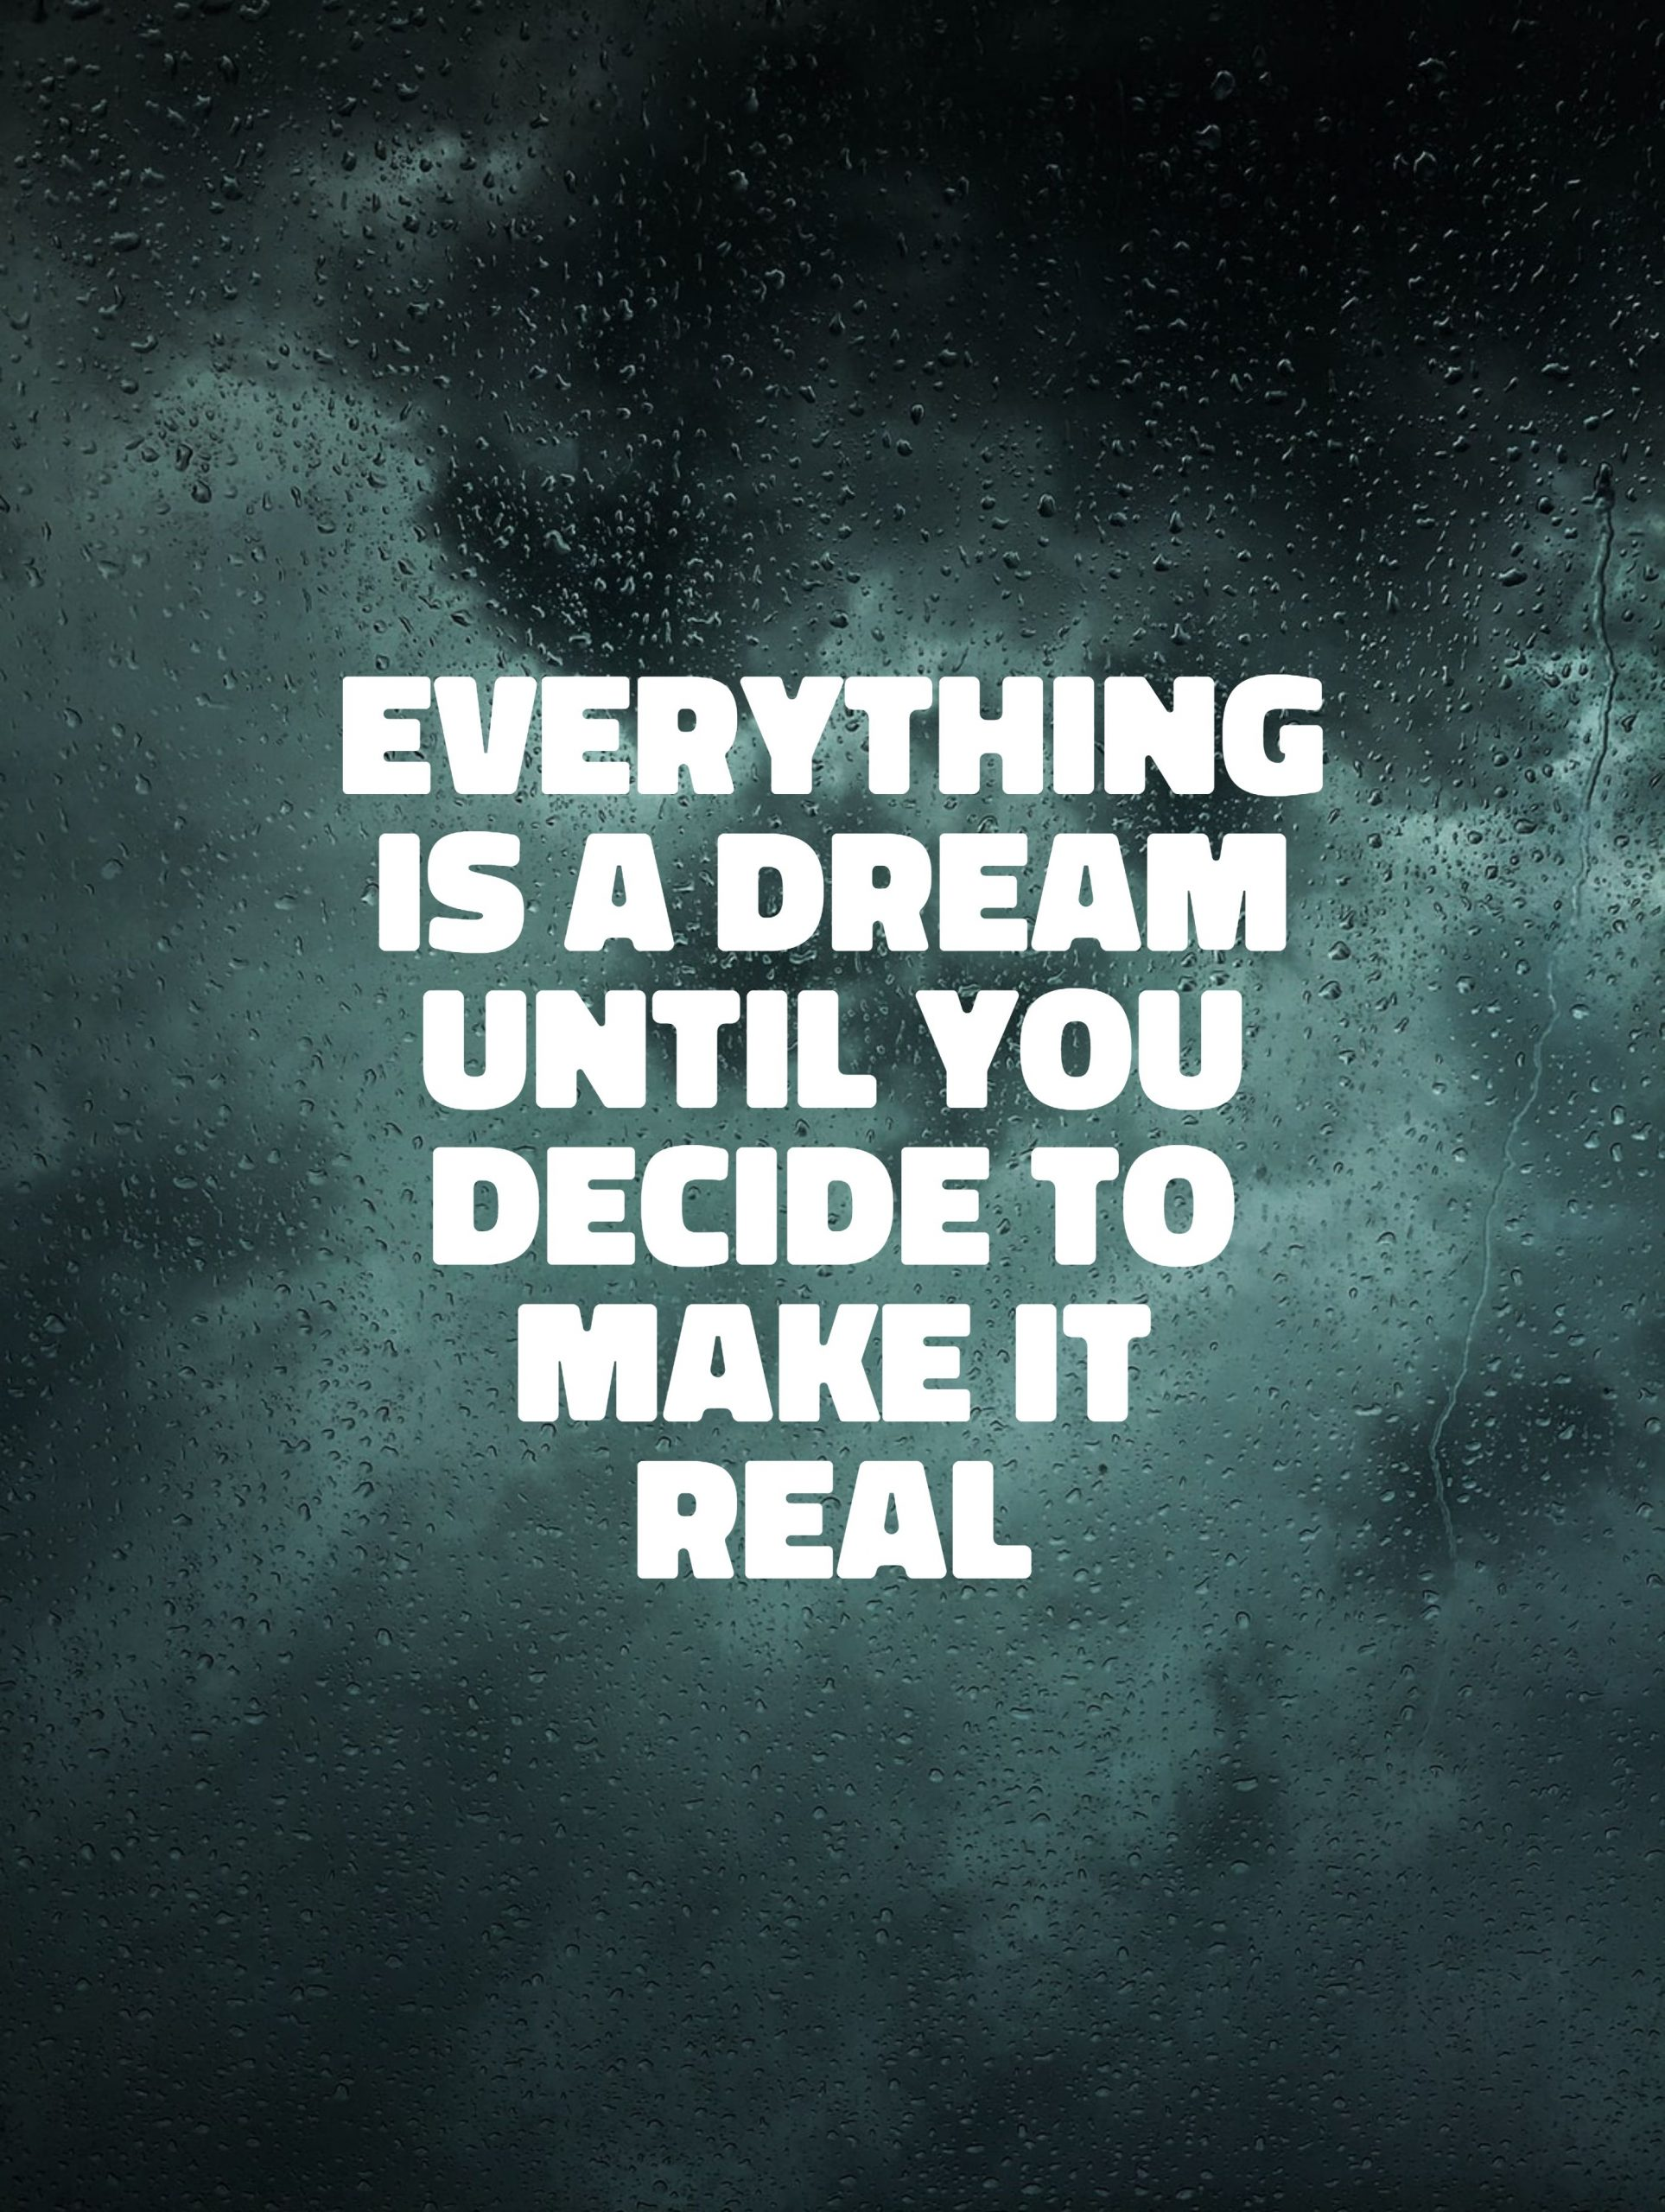 Quotes image of Everything Is a dream until you decide to make it real